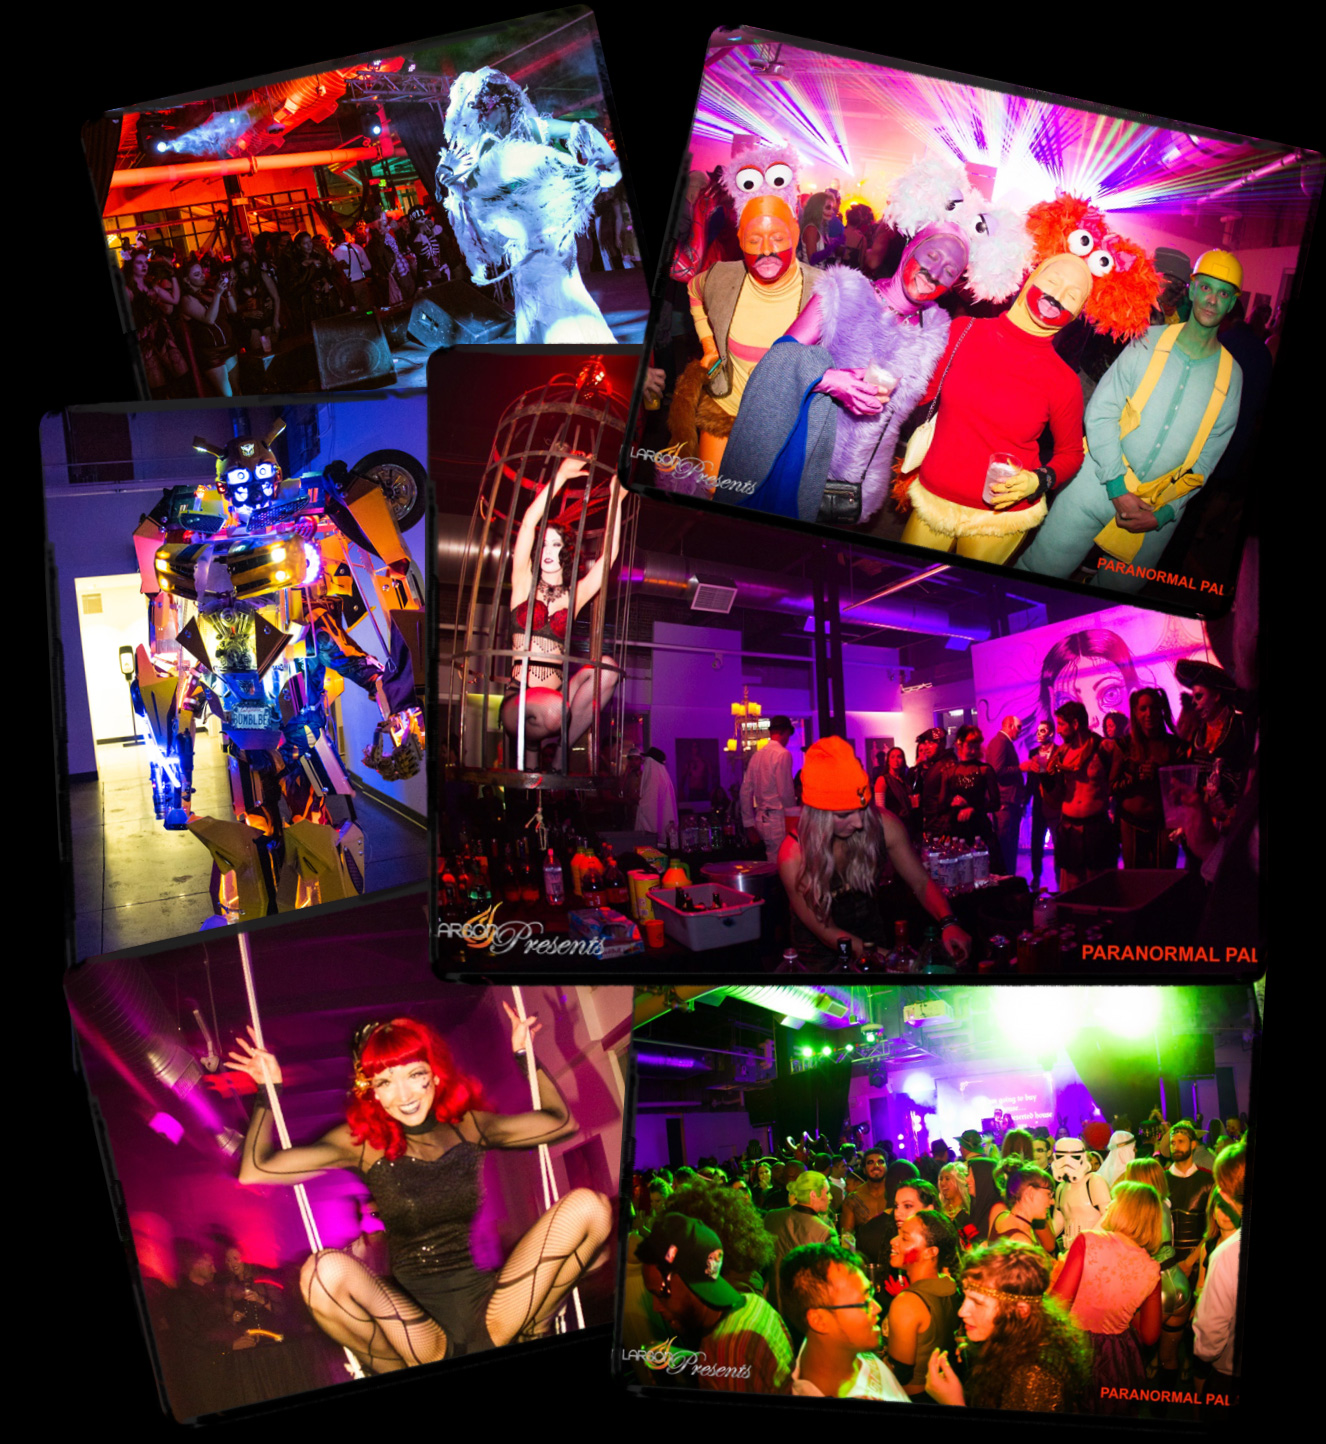 paranormal palace photo collage denver halloween